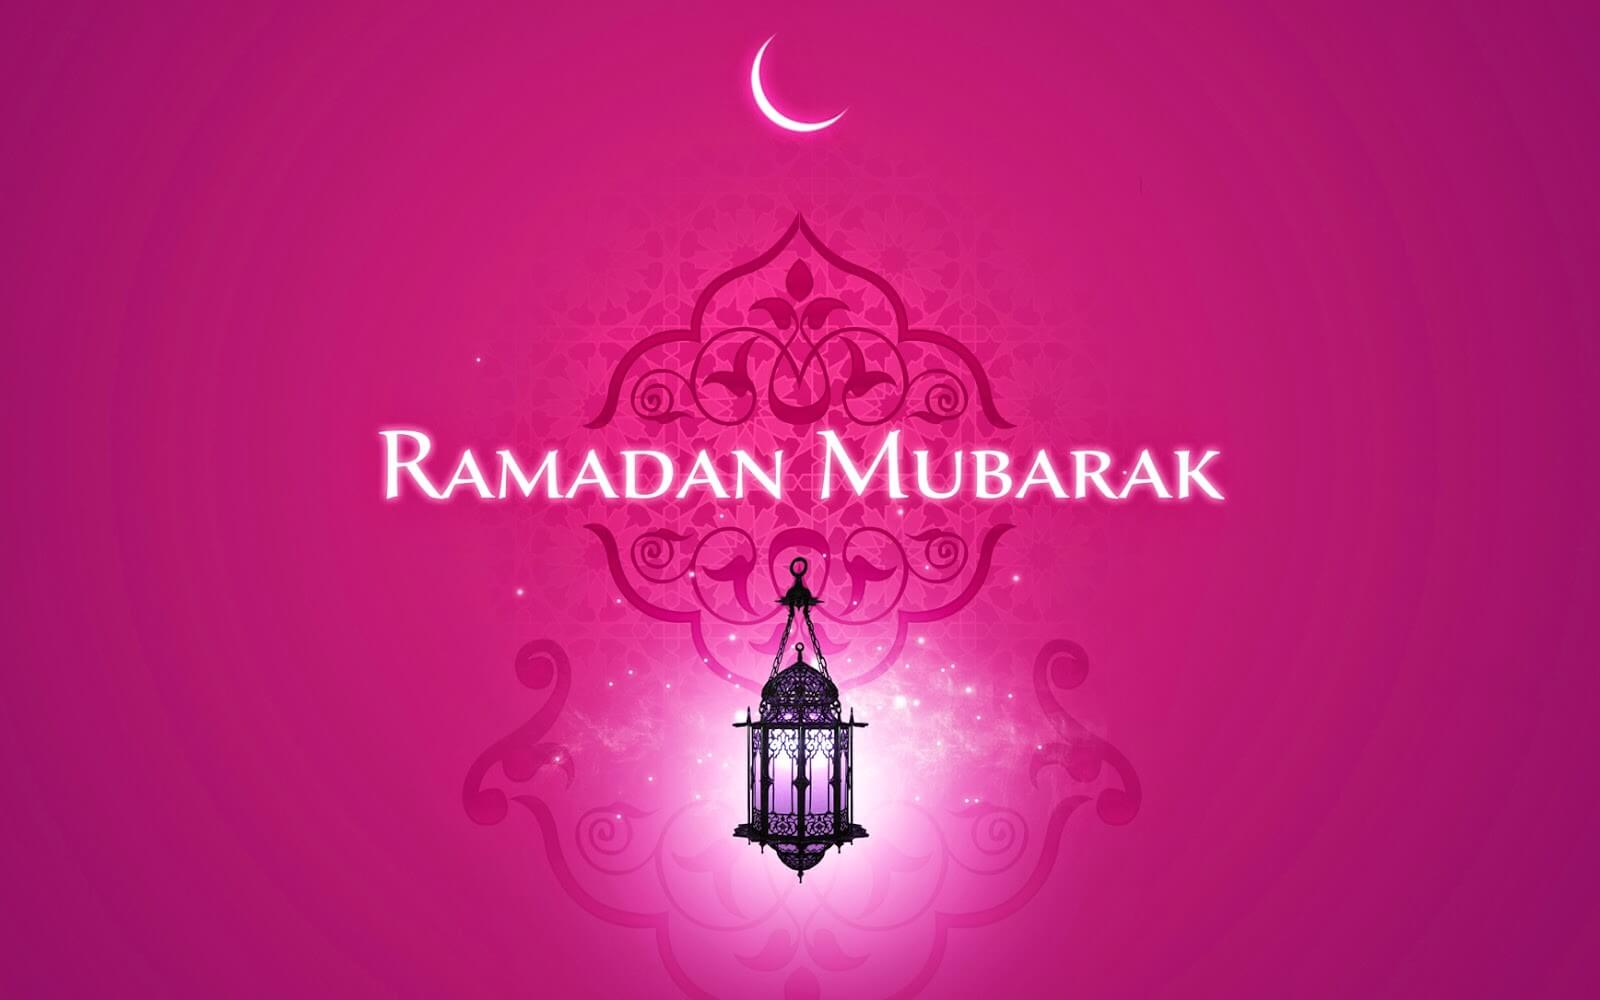 Hd wallpaper ramzan mubarak - Happy Ramadan Ramzan Wishes Wallpaper